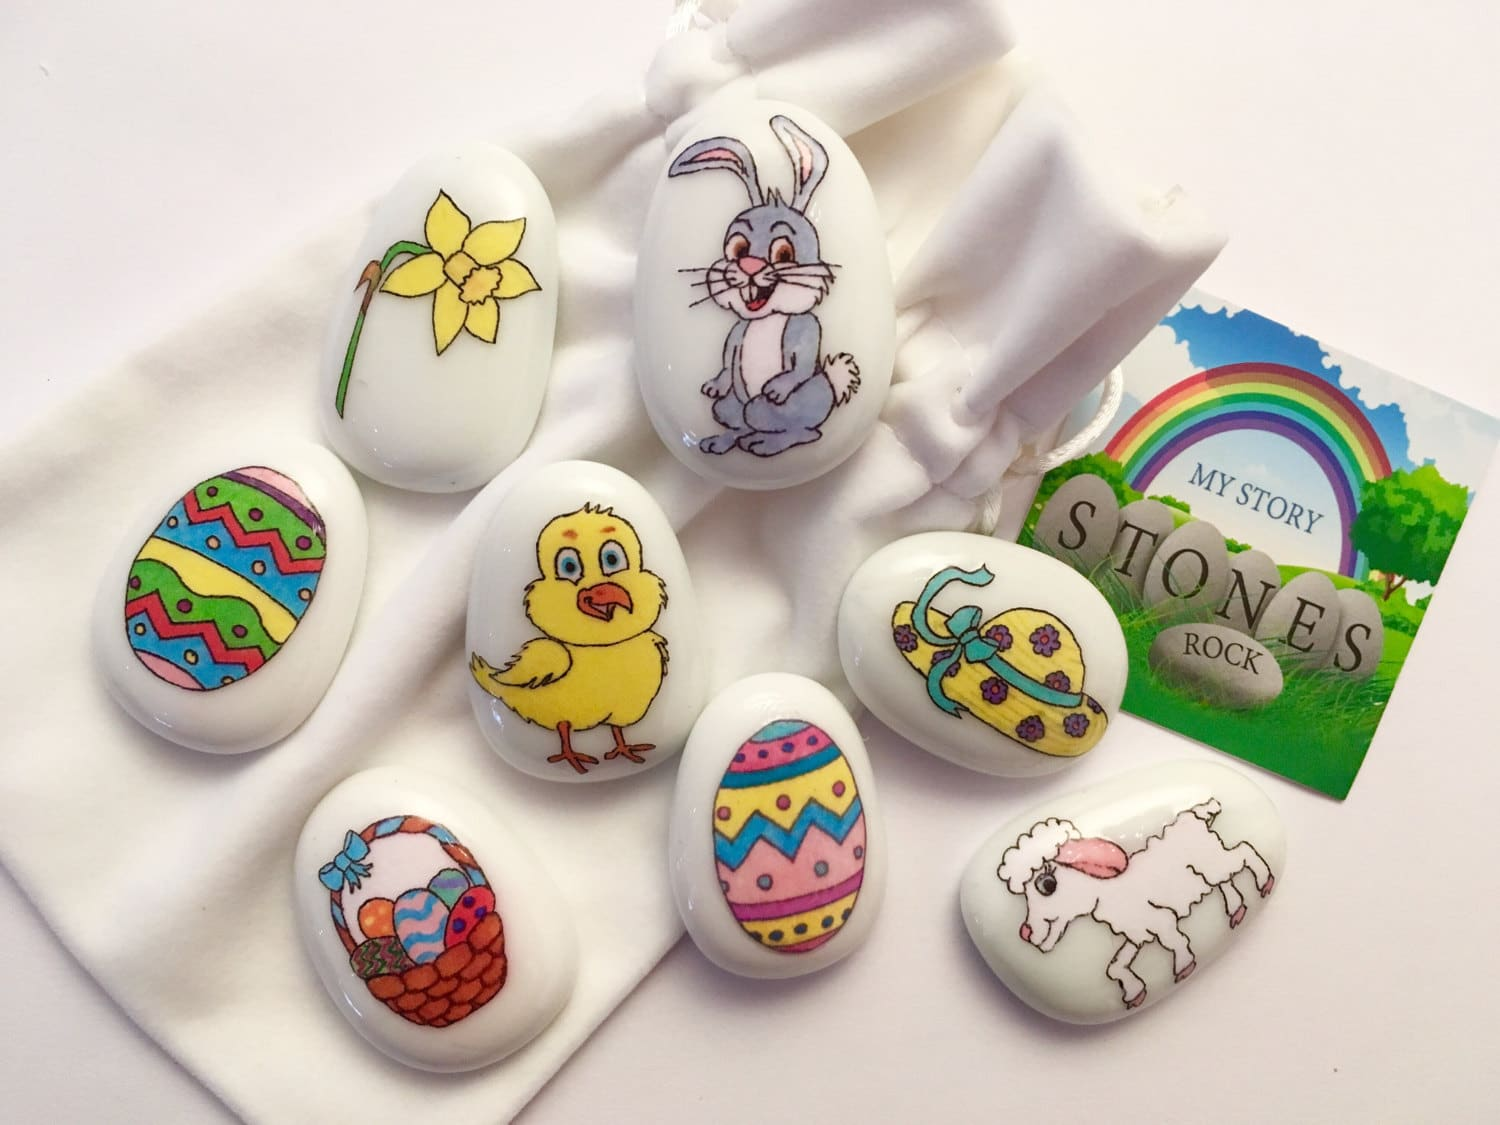 Easter story stones, non chocolate easter gifts for kids, non chocolate Easter gifts for kids, non chocolate Easter gift ideas for kids, Easter gift ideas for kids, Easter gift idea, Kids Easter gift, Easter story stones, Best Easter gifts for children, Easter gifts for children, Easter gifts for kids, non chocolate Easter gifts for kids,